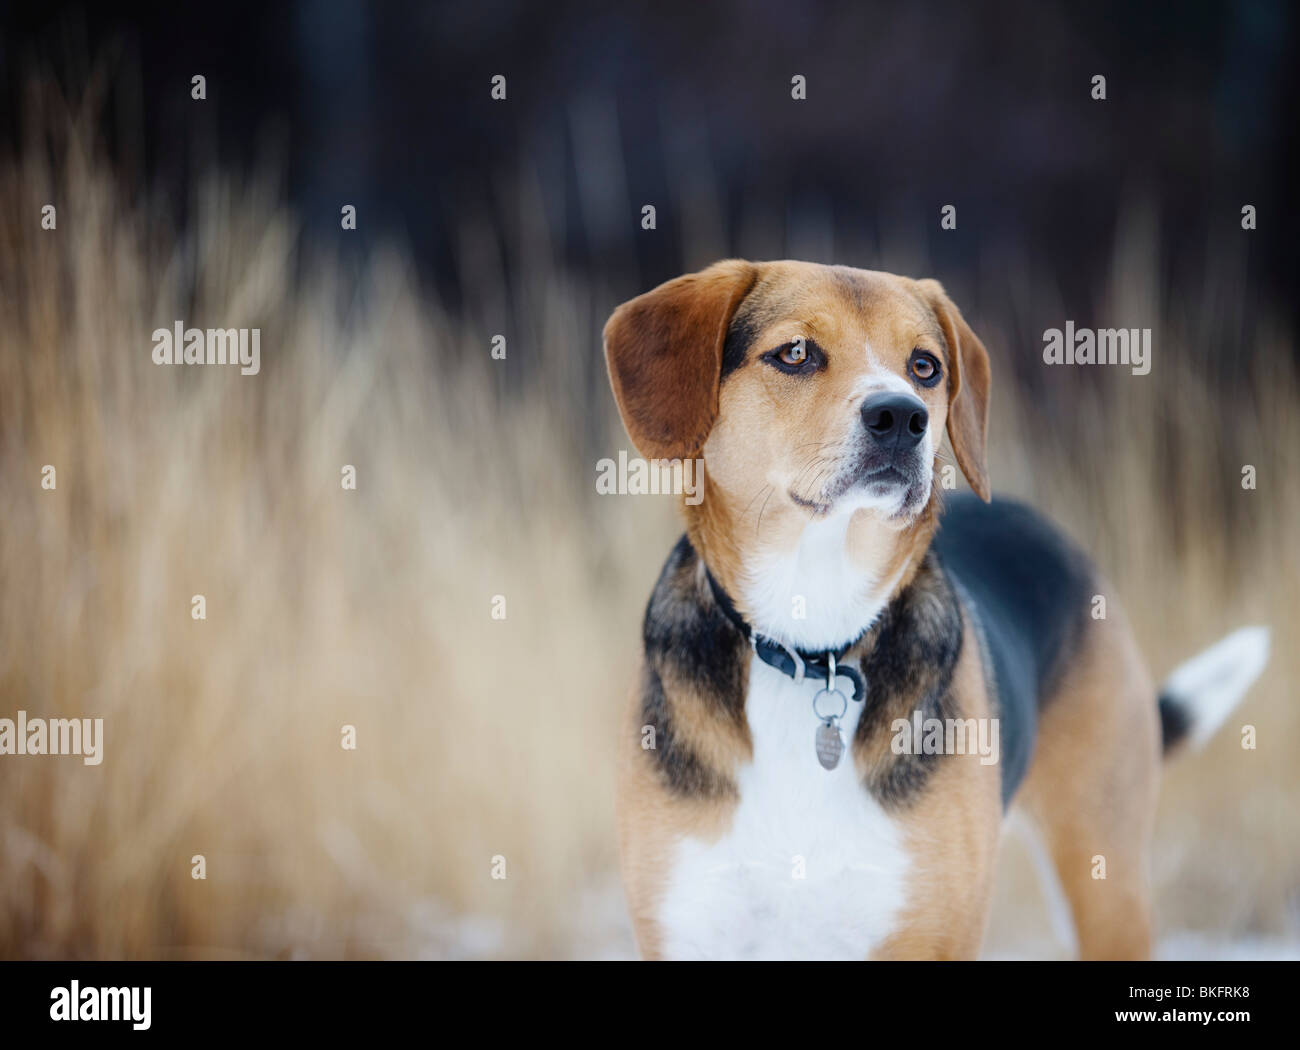 Beagle - Stock Image